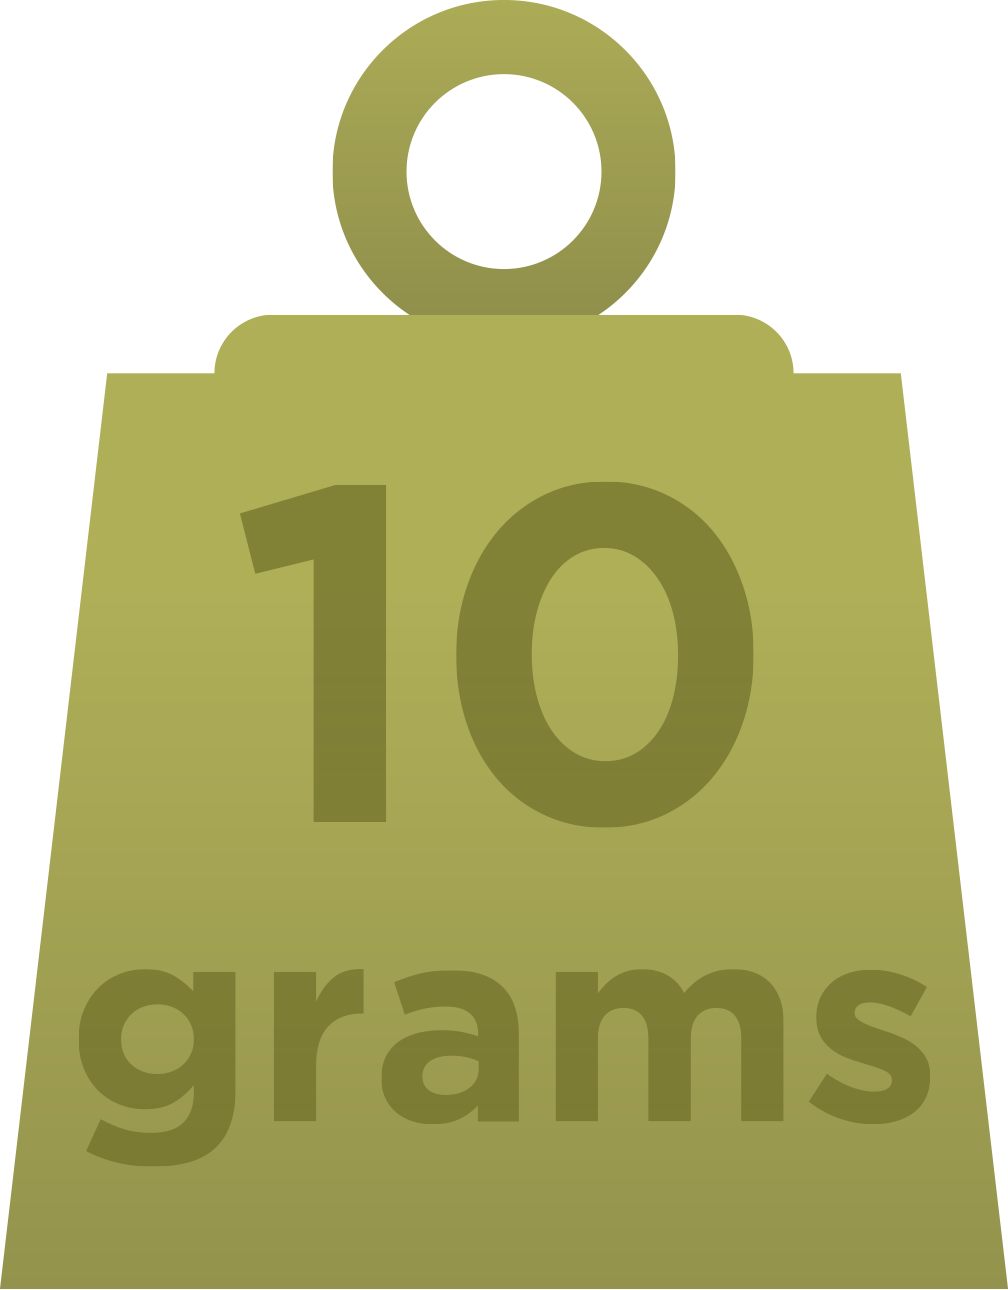 Website clipart newsletter. View grams png free